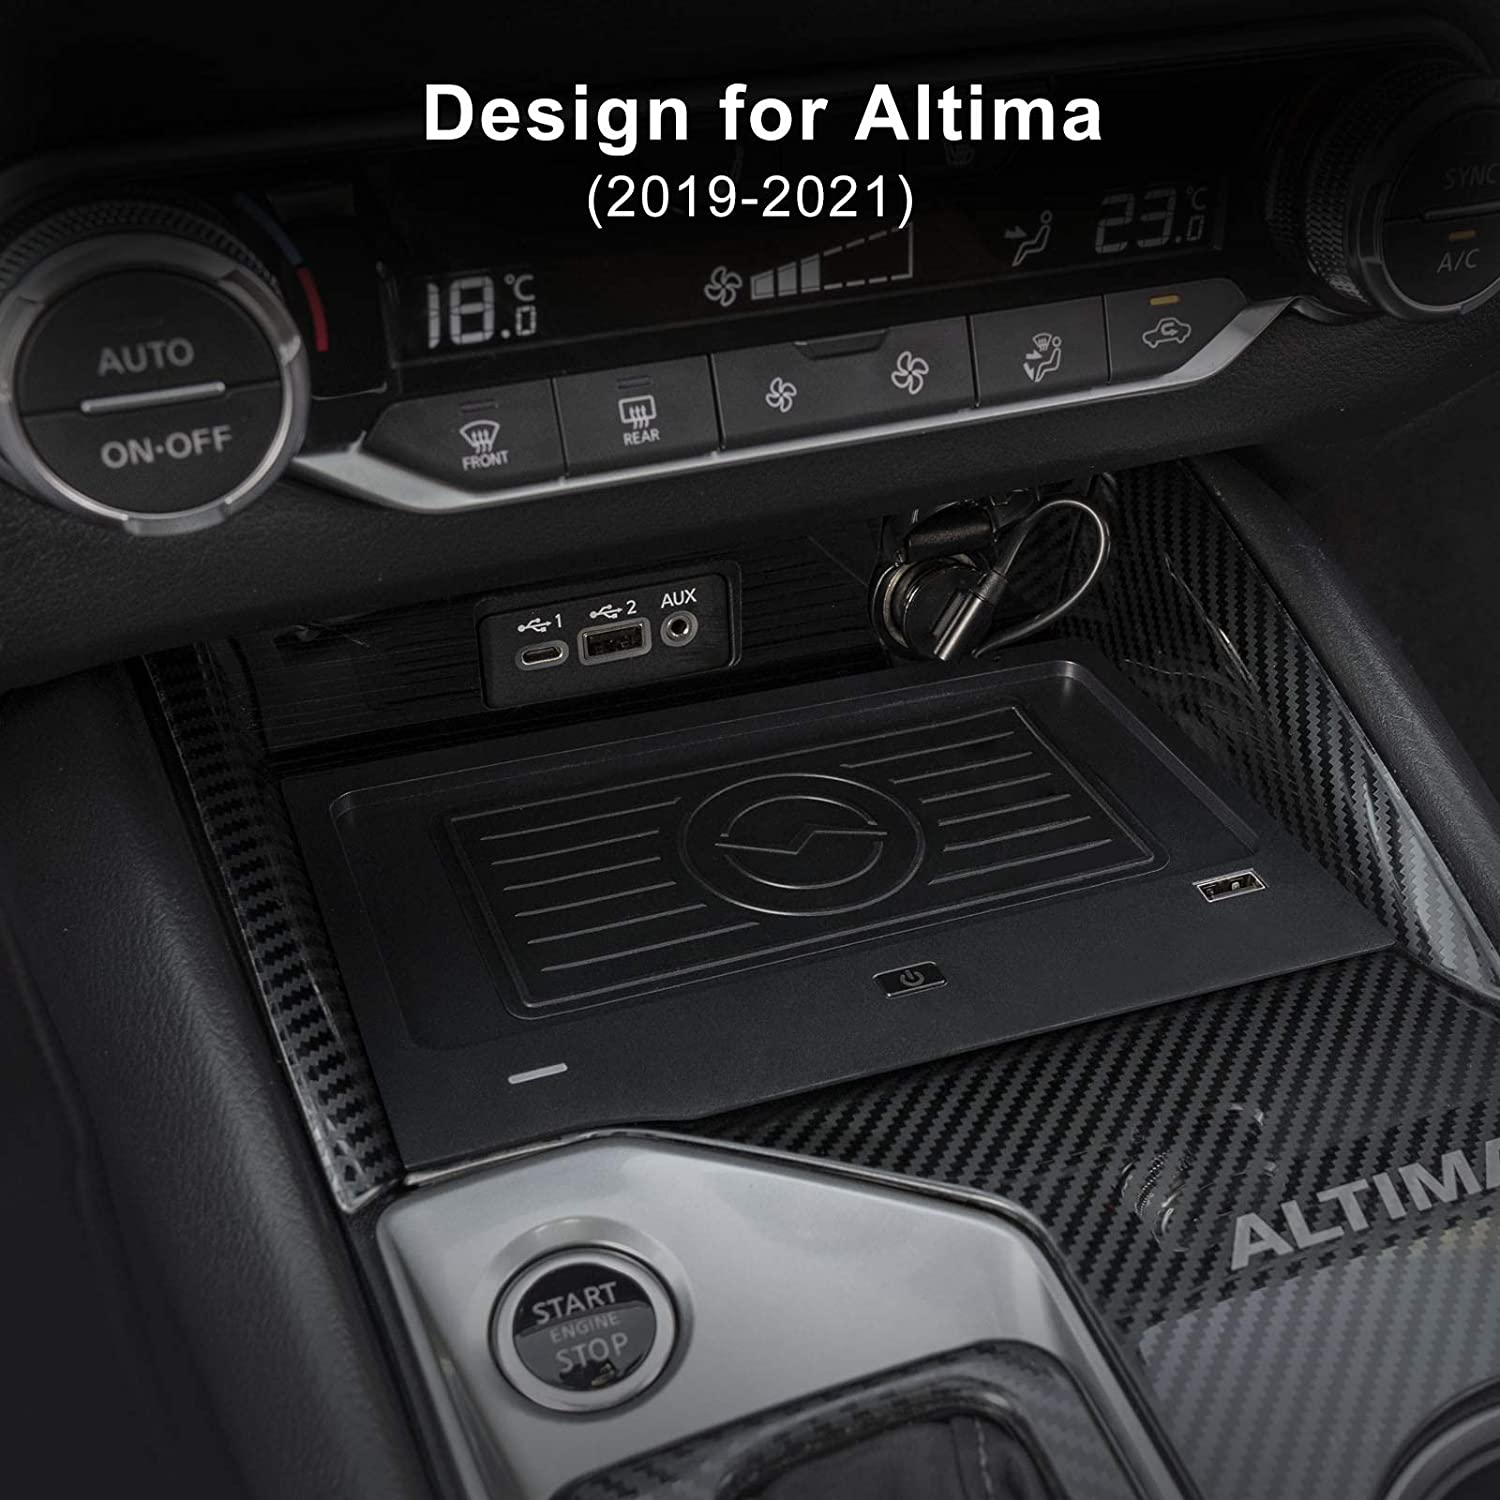 SL SR VC-Turbo Platinum VC-Turbo Edition One SR Wireless Charger for Nissan Altima 2019-2021 L34 Accessories Phone Wireless Charging Pad Mat fit for S SV Platinum